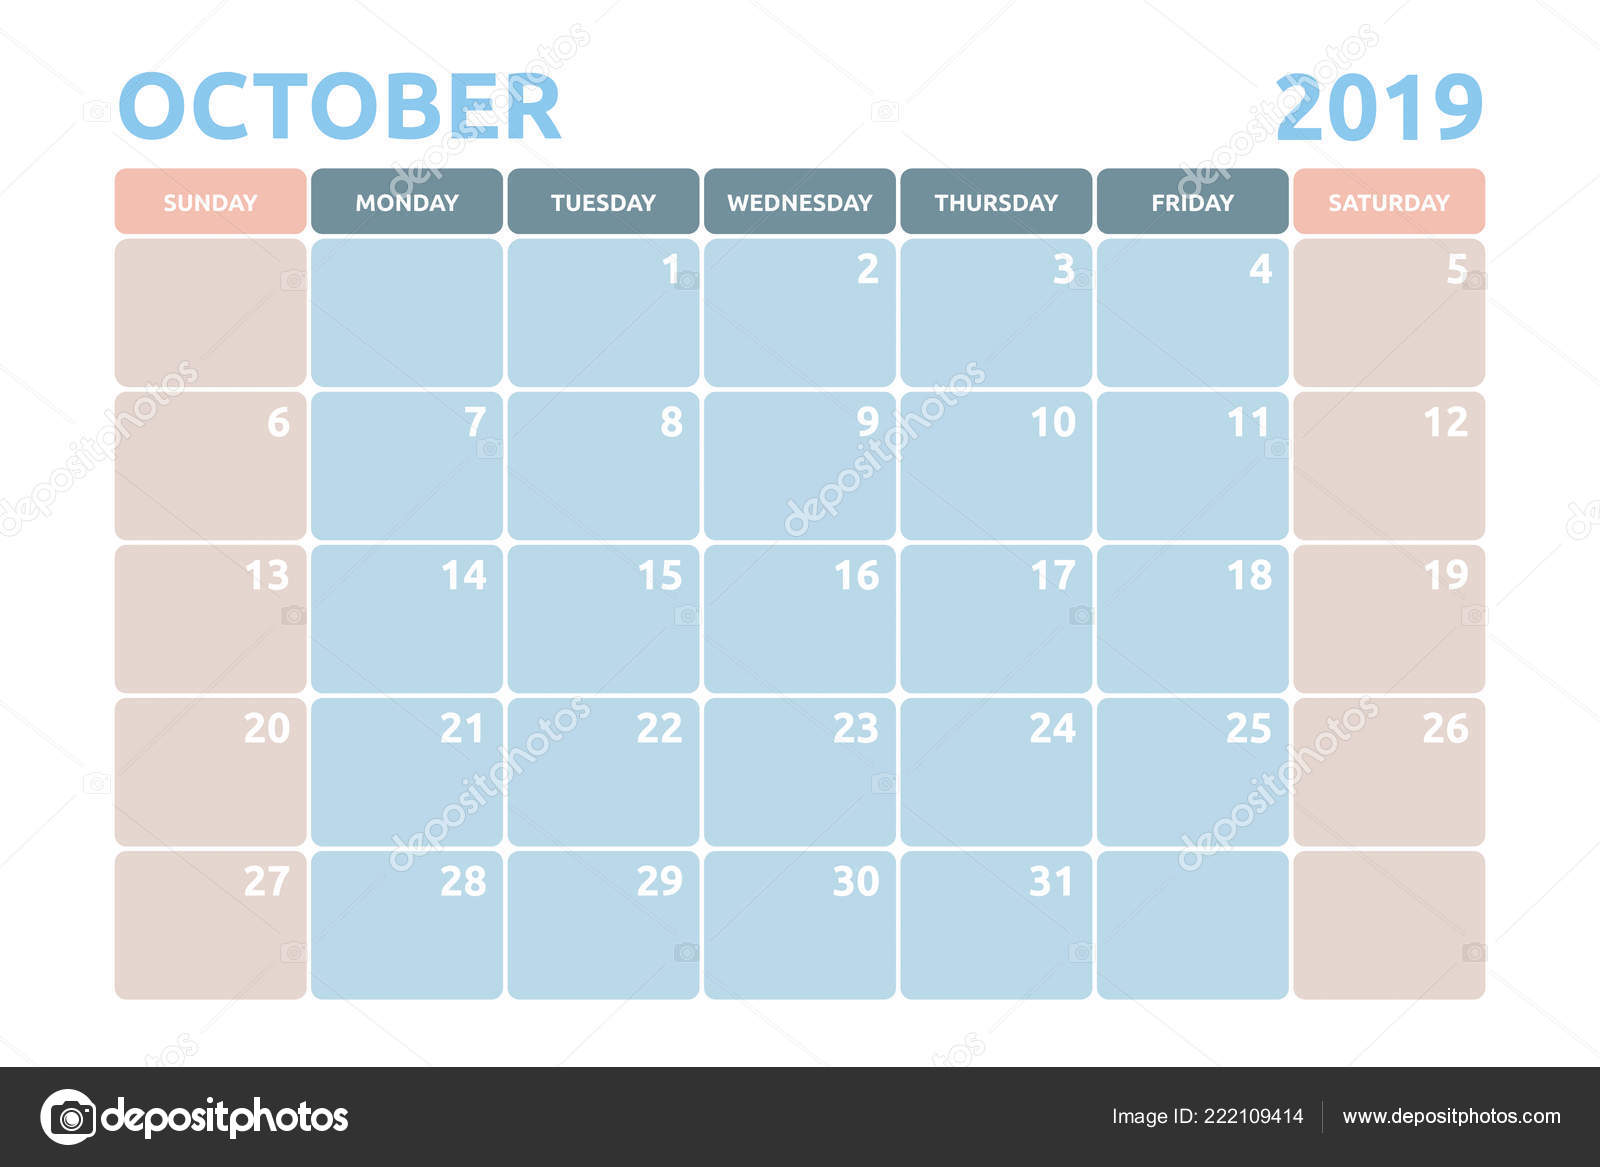 Minimal Calendar Design October 2019 Copy Space Desk Planner